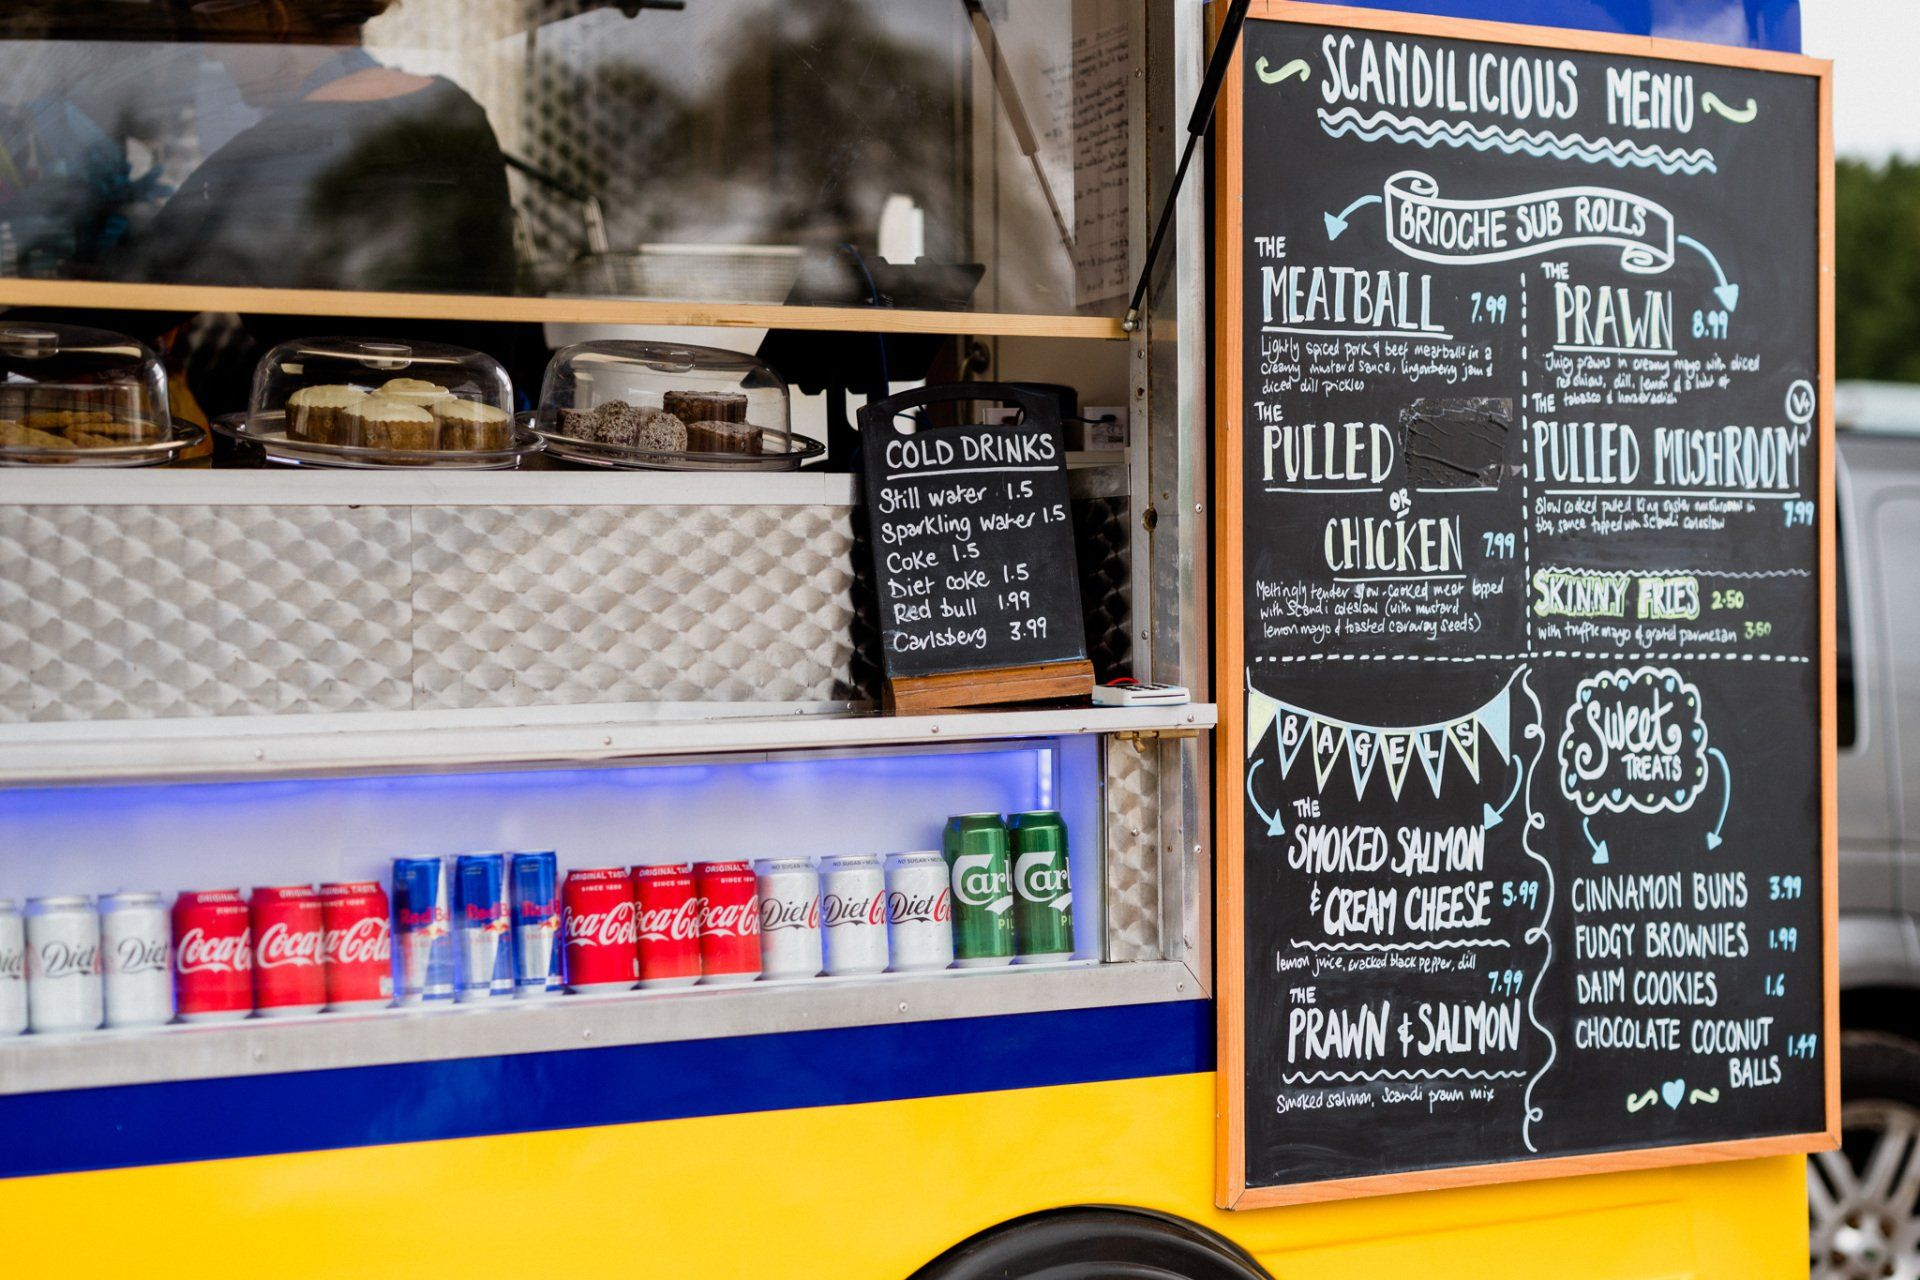 Scandilicious Food Truck